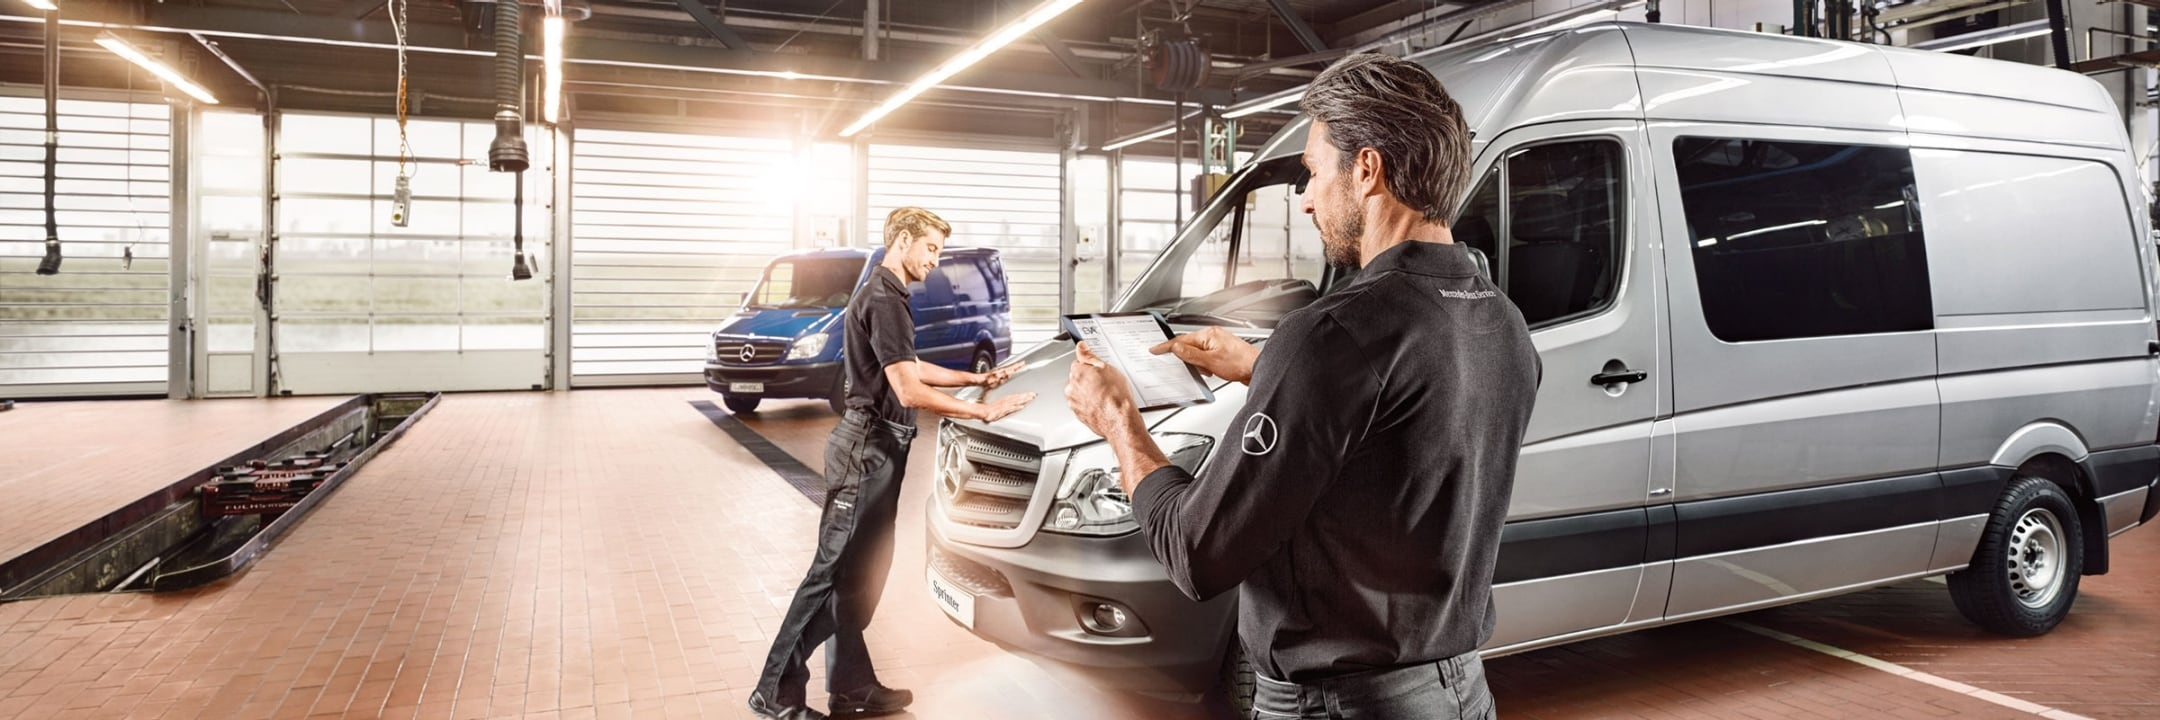 Mercedes-Benz services for vans.